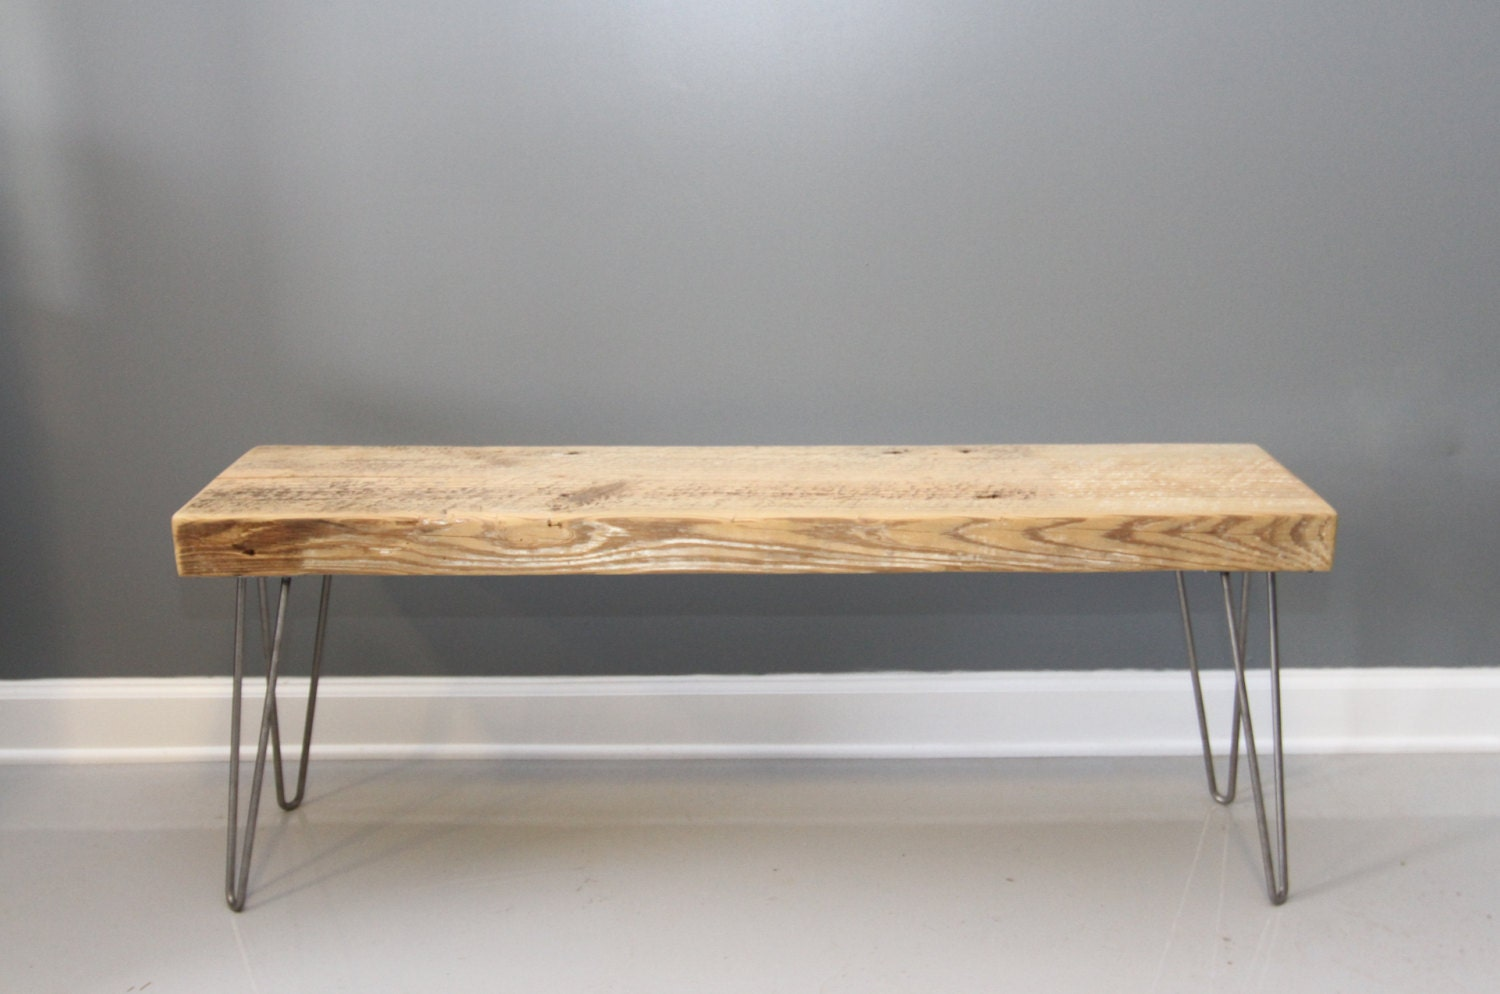 Reclaimed Wood Bench Hairpin Legs Shipping Lifetime By Dendroco